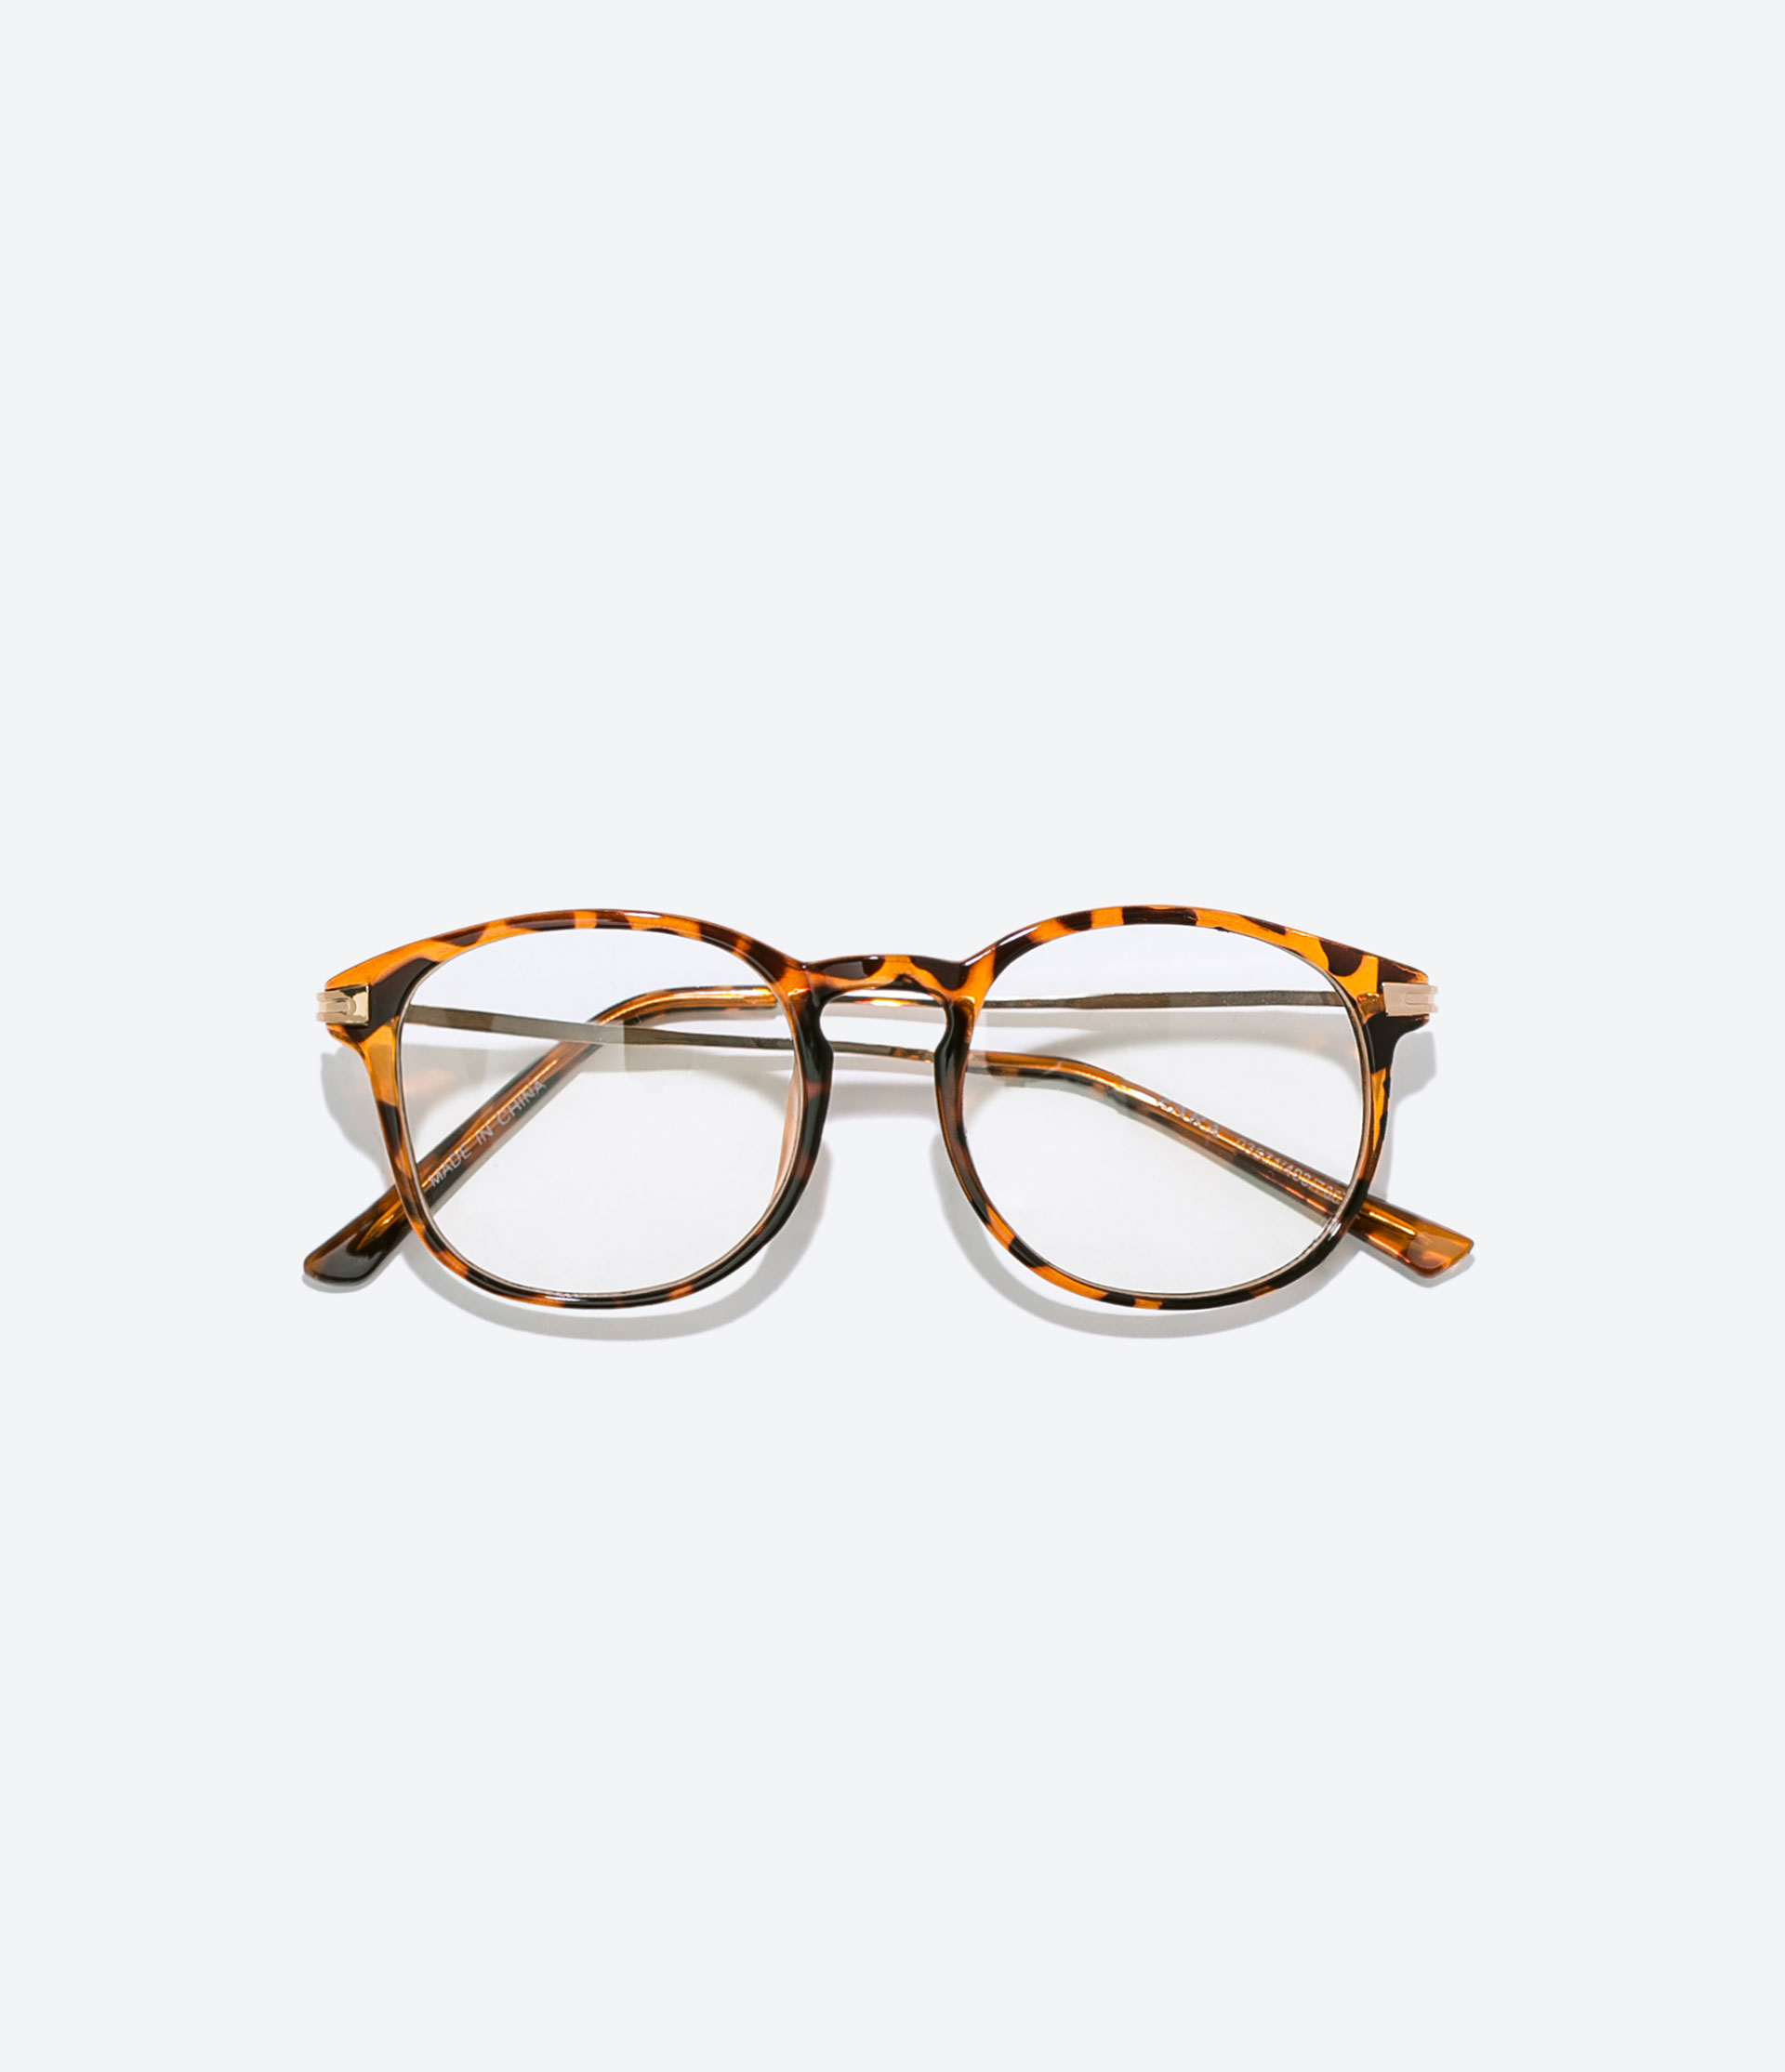 Zara Glasses Frames : Zara Glasses With Gold Arms in Brown for Men Lyst